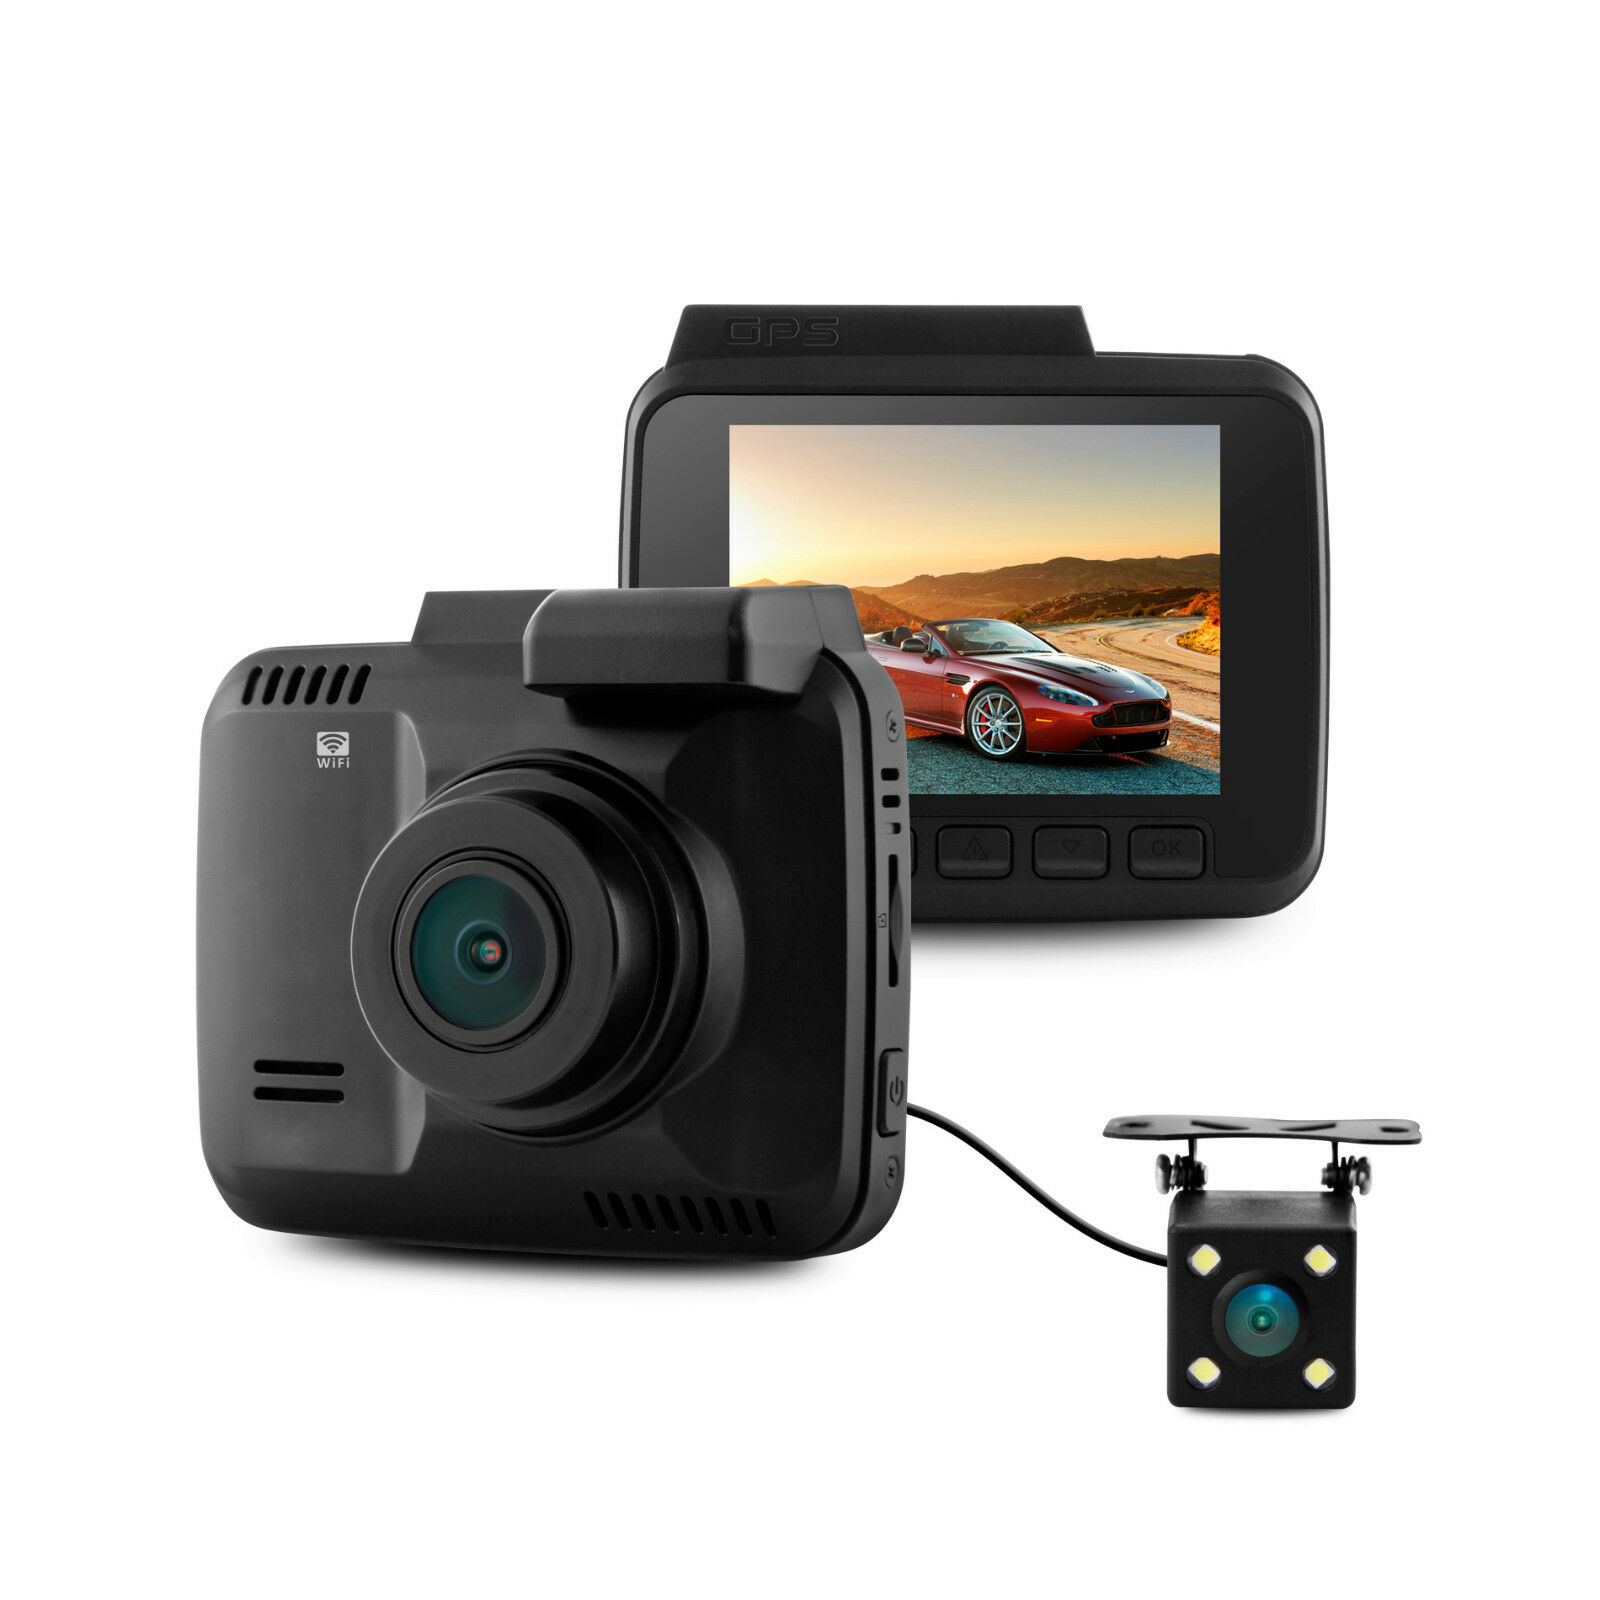 s-l1600 Hiwowsport Car Dash Cam 4K Ultra HD 2160P Built In WiFi & GPS Parking Mode Rear